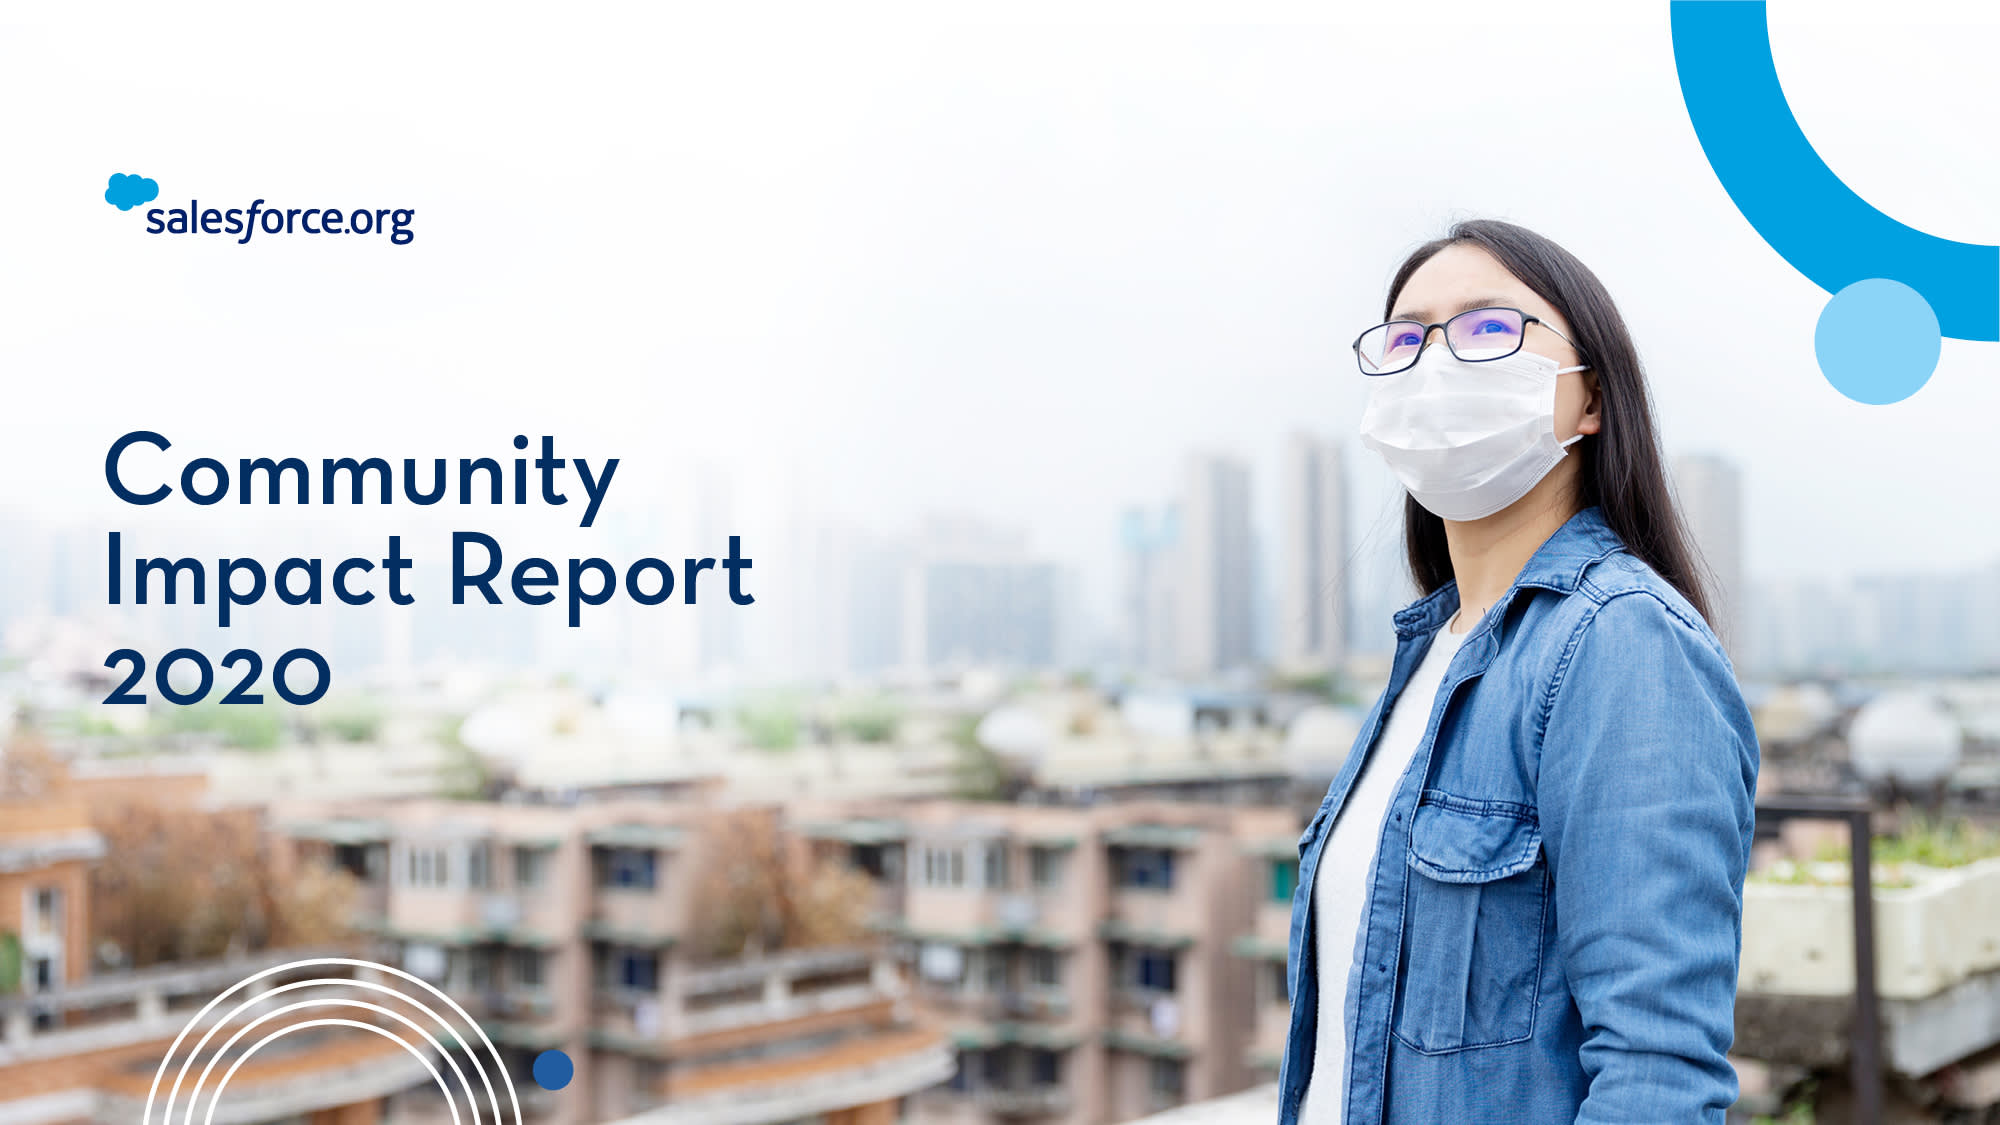 The cover of the the Salesforce.org Community Impact Report 2020 and the cover page of the FY20 Salesforce Stakeholder Impact Report